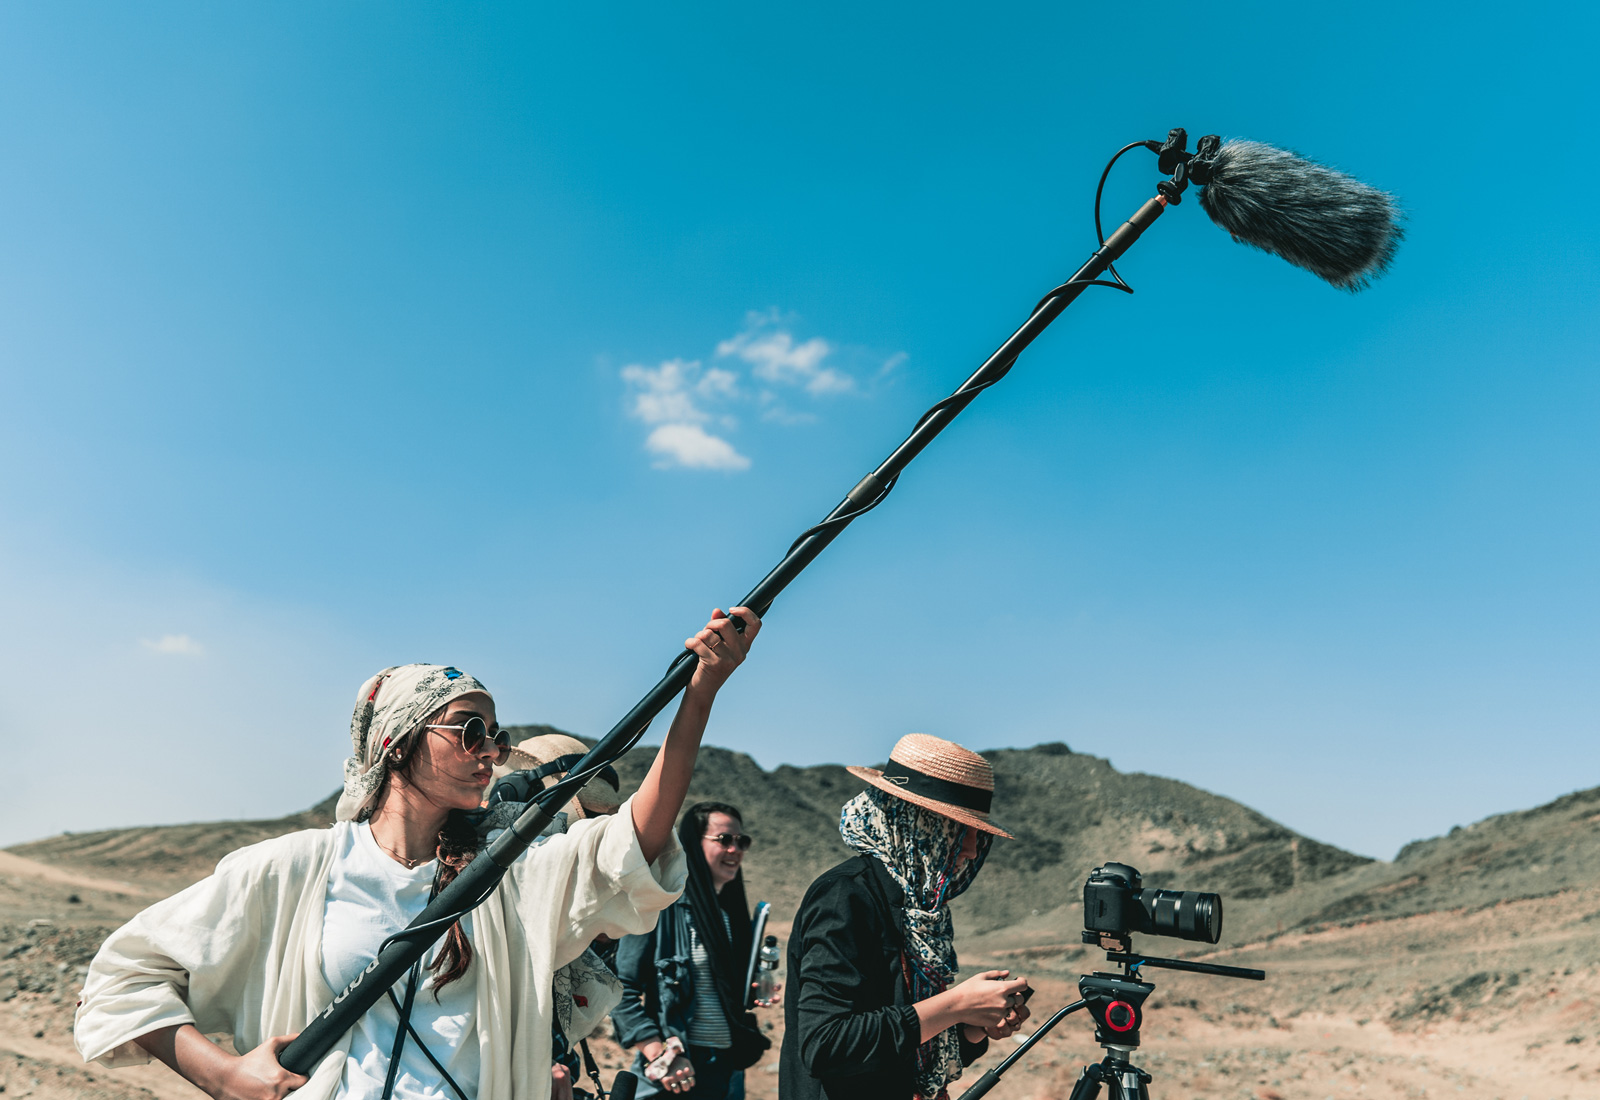 Champlain College filmmaking students on location in Saudi Arabia. Student in desert with a boom mike lifted high in the air against a very blue sky.